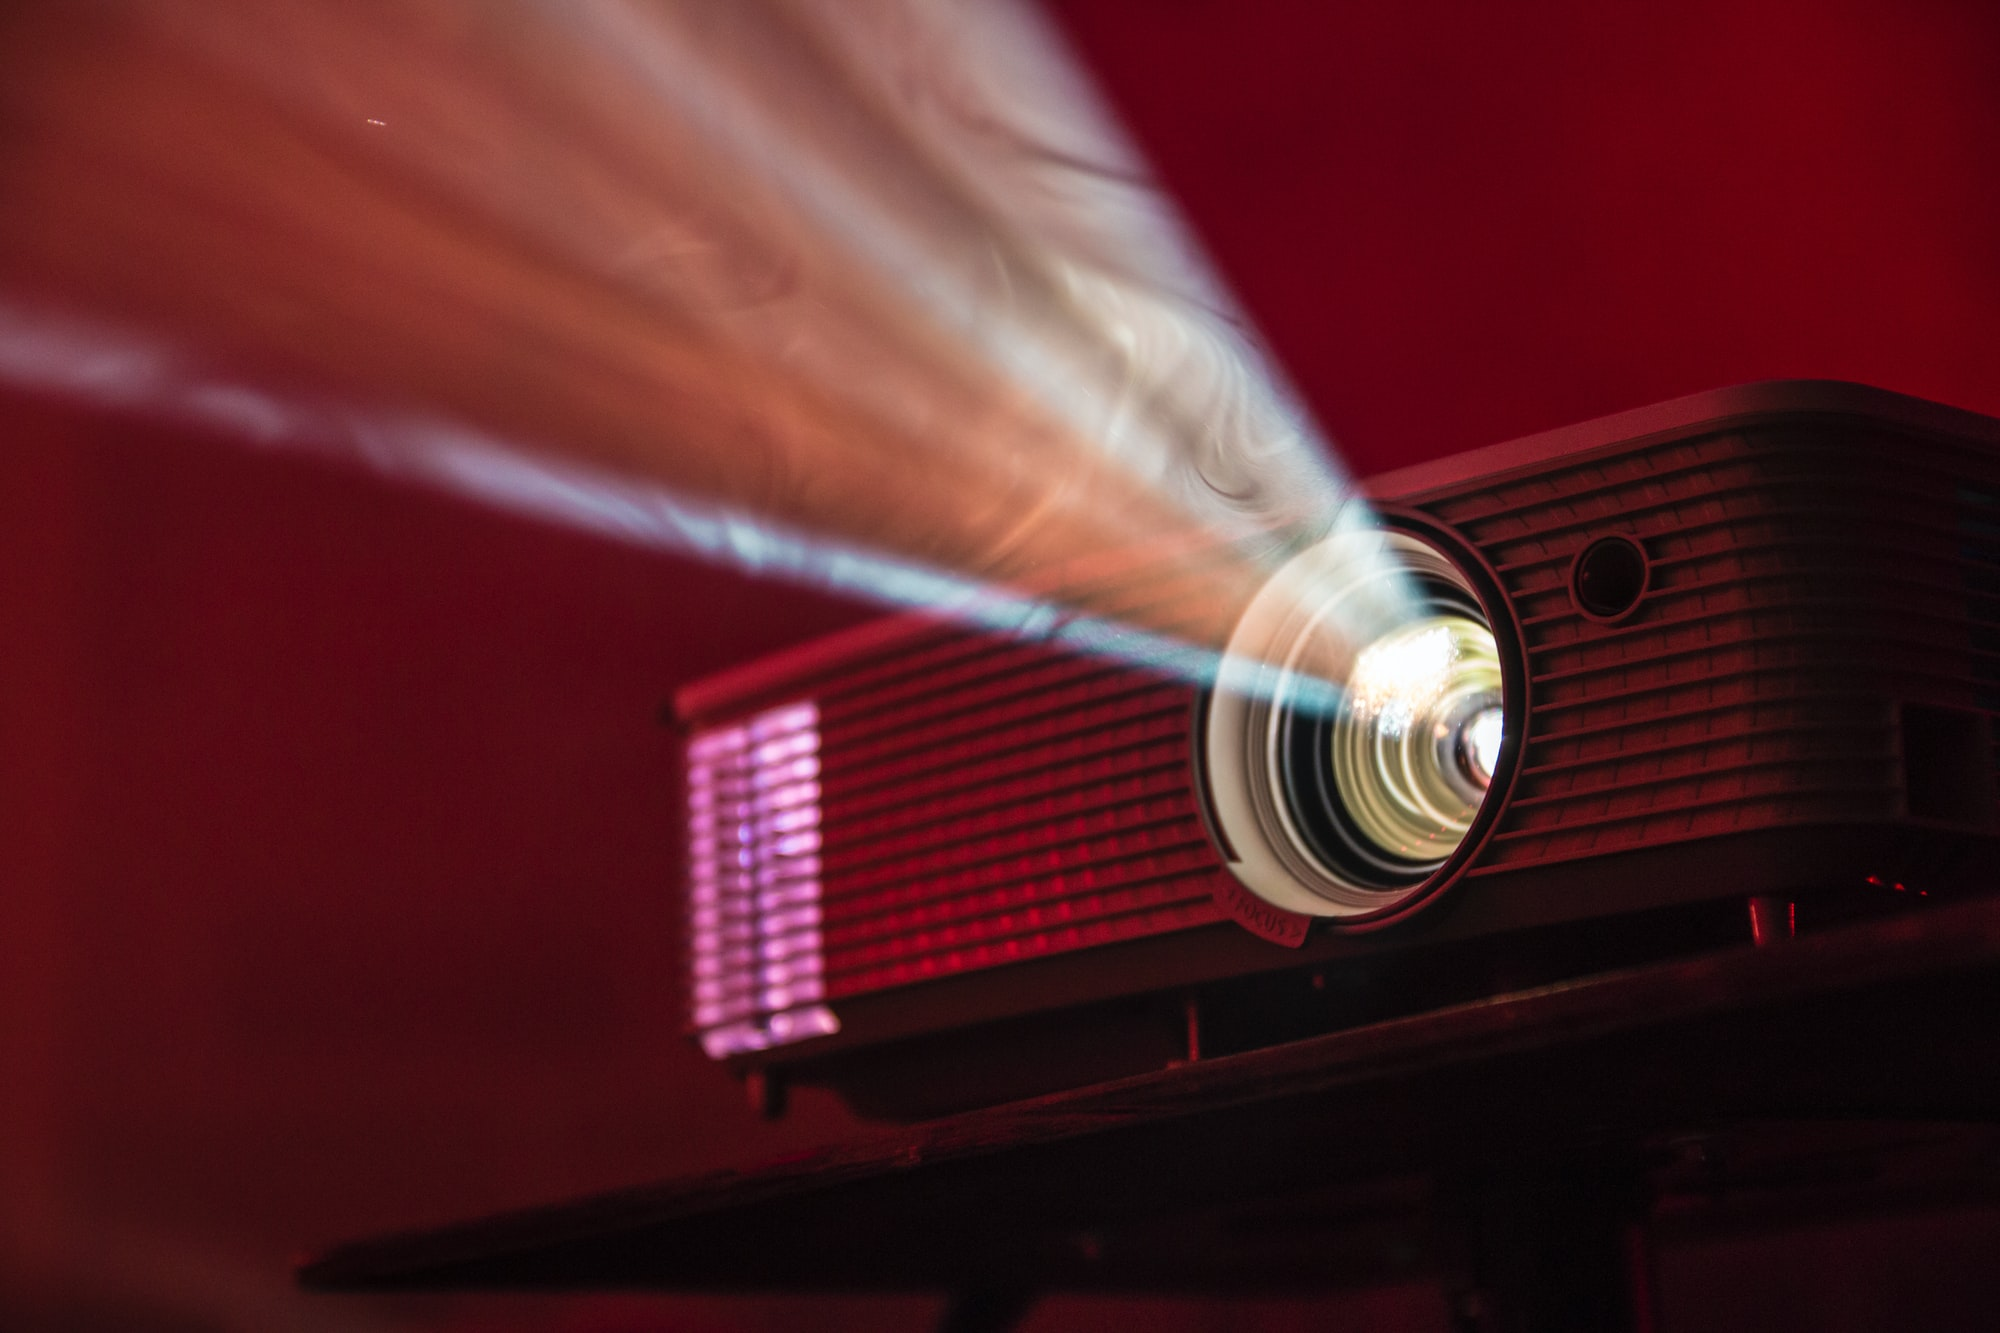 Projector rays